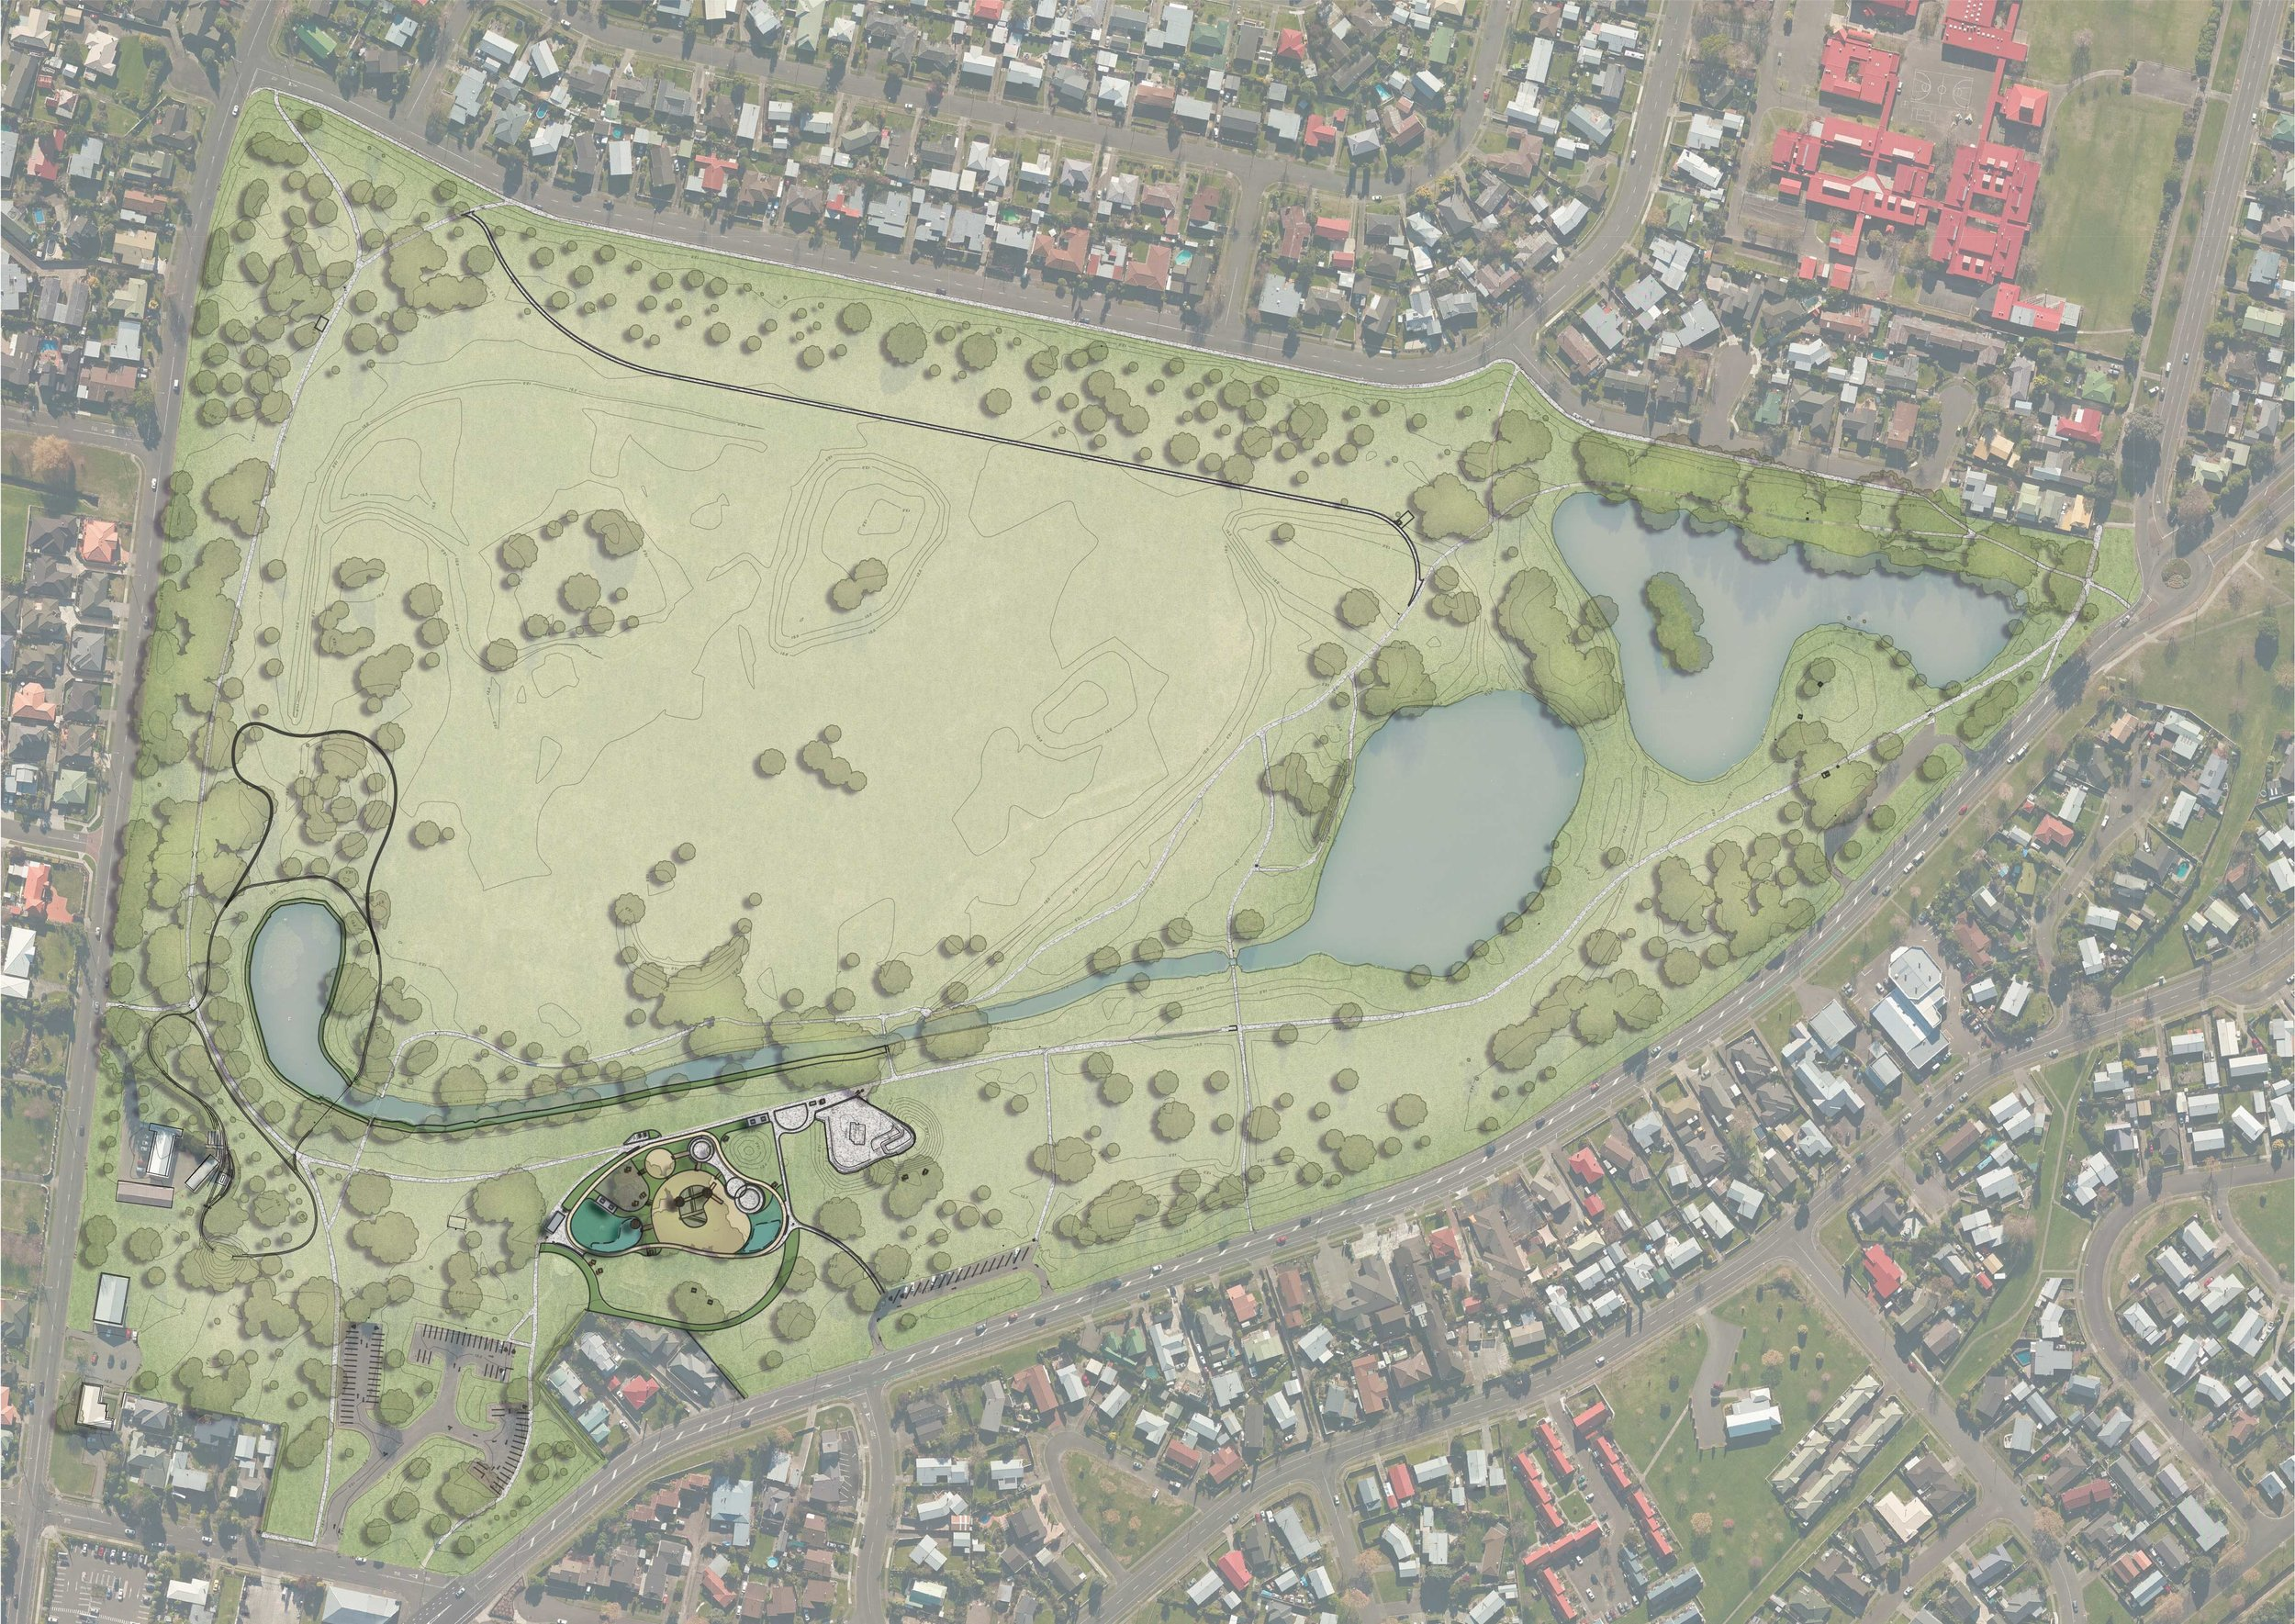 Centrally located within one of Napier's premier suburban parks, Anderson Park Playground has accessible and imaginative features in an inclusive environment that encourages all abilities and ages to play alongside each other. Boffa Miskell was selected to develop a conceptual masterplan for the park and new playground and to proceed through developed design, detailed design and documentation and to act as engineer's representative for the playground during construction.